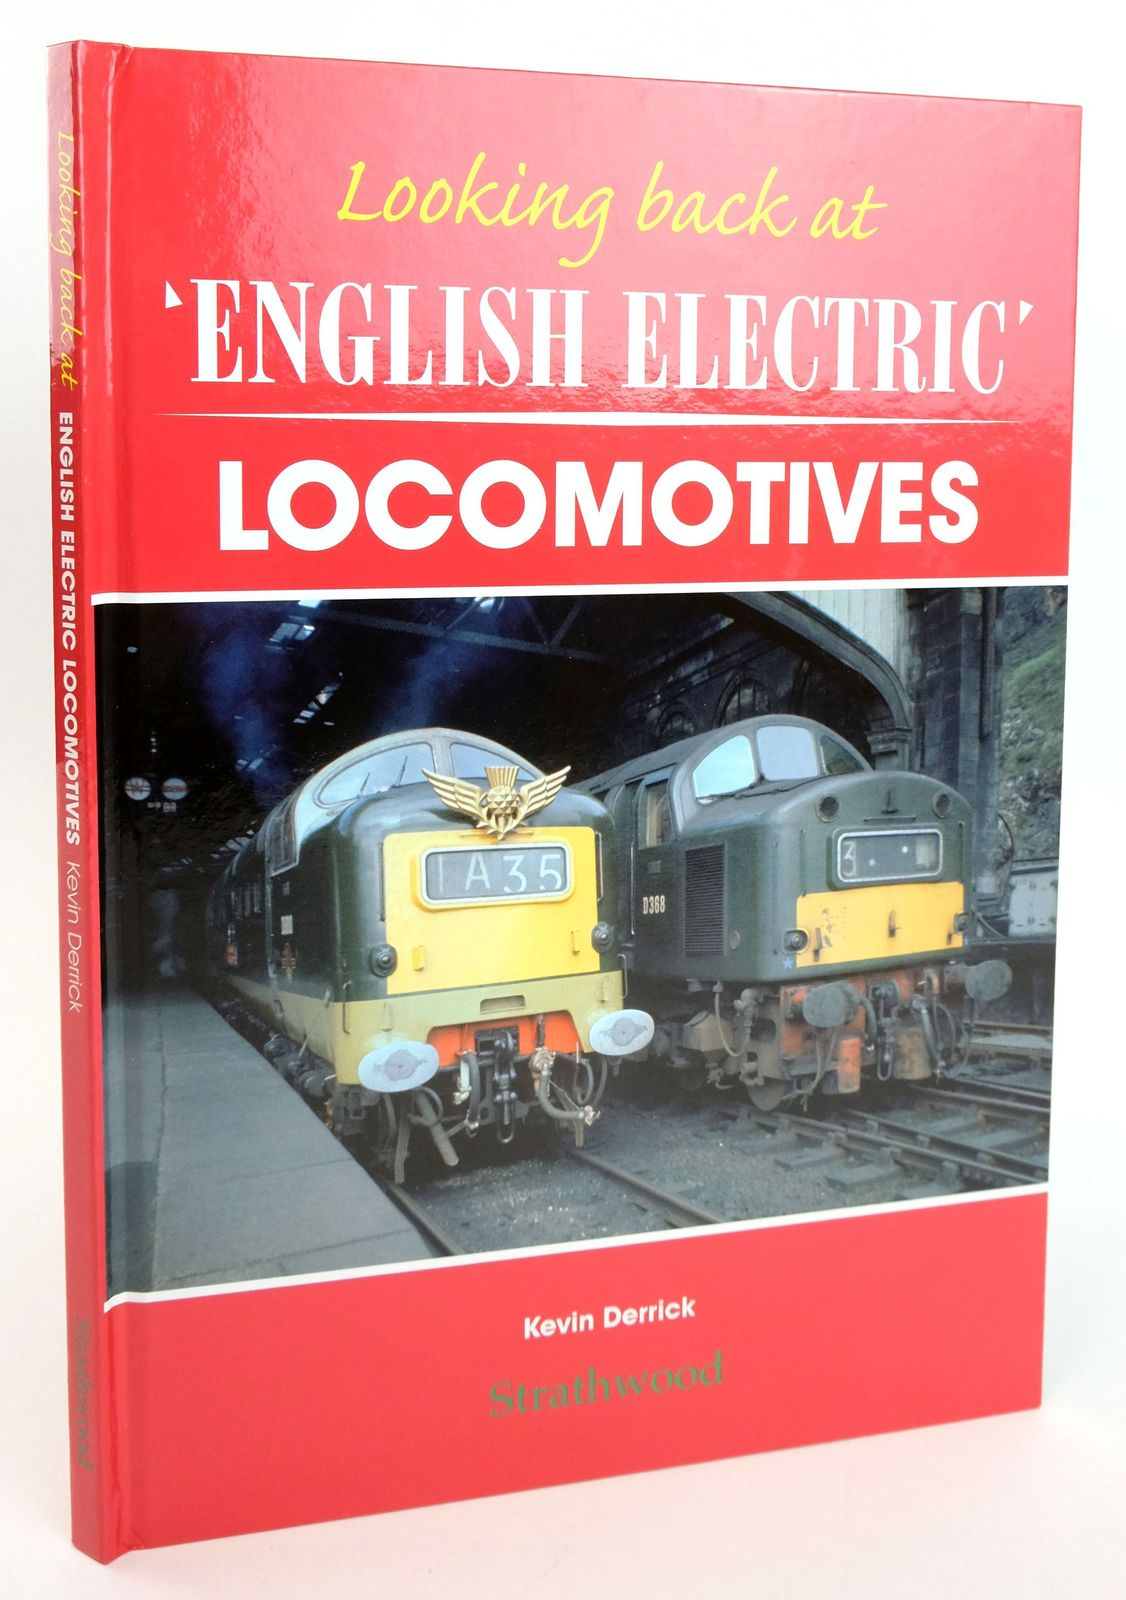 Photo of LOOKING BACK AT ENGLISH ELECTRIC LOCOMOTIVES written by Derrick, Kevin published by Strathwood Ltd (STOCK CODE: 1820049)  for sale by Stella & Rose's Books